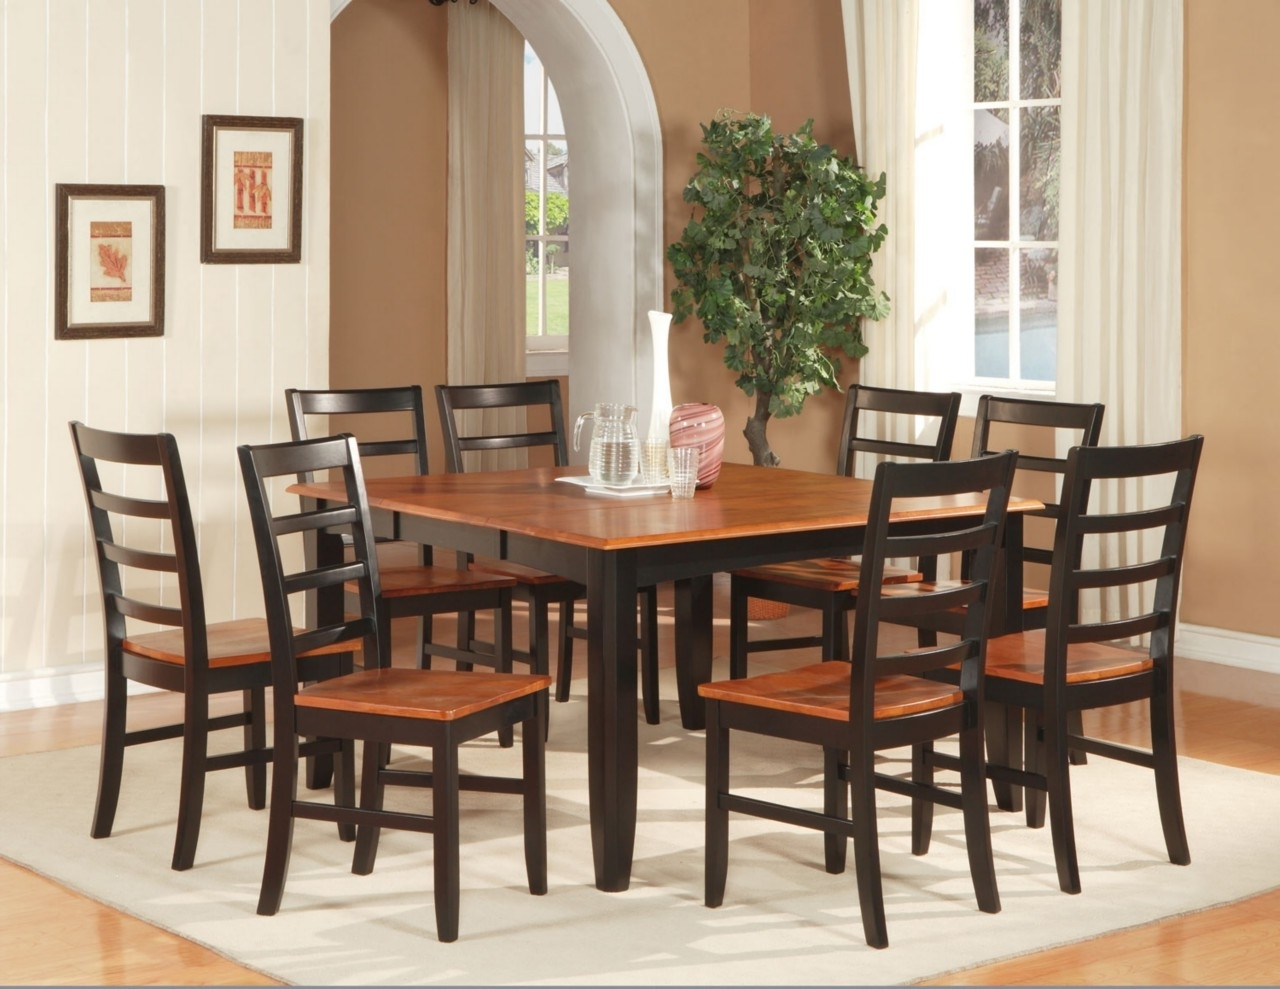 Preferred Dining Tables And 8 Chairs For Sale Inside Dining Table 8 Chairs Set – Castrophotos (View 20 of 25)